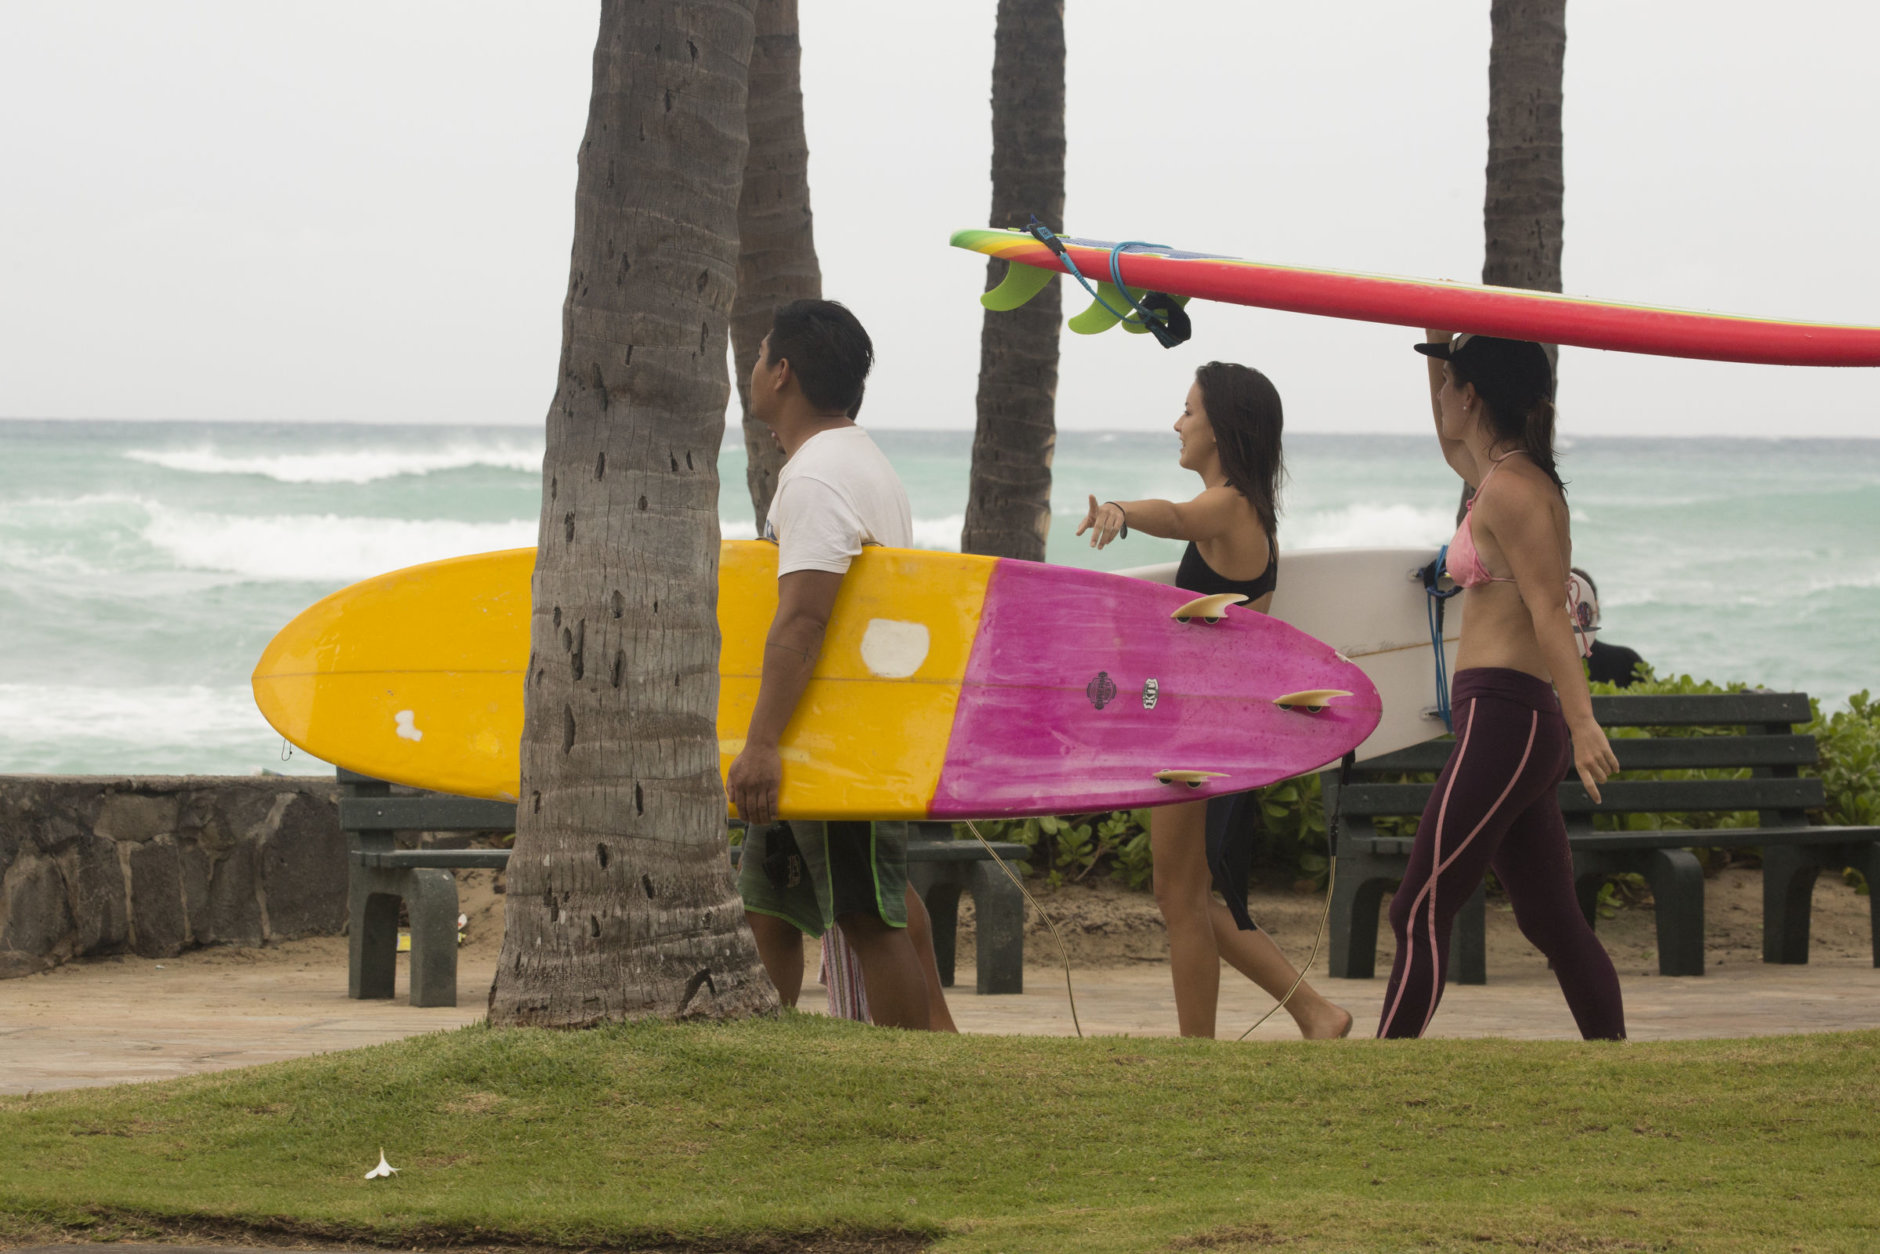 HONOLULU, HI - AUGUST 23:  Surfers head to the water to take advantage of the waves caused by Hurricane Lane's approach to Waikiki Beach on August 23, 2018 in Honolulu, Hawaii. Hurricane Lane, which lashed the Big Island with nearly 20 inches of rain, has been downgraded to a Category 3 storm. (Photo by Kat Wade/Getty Images)